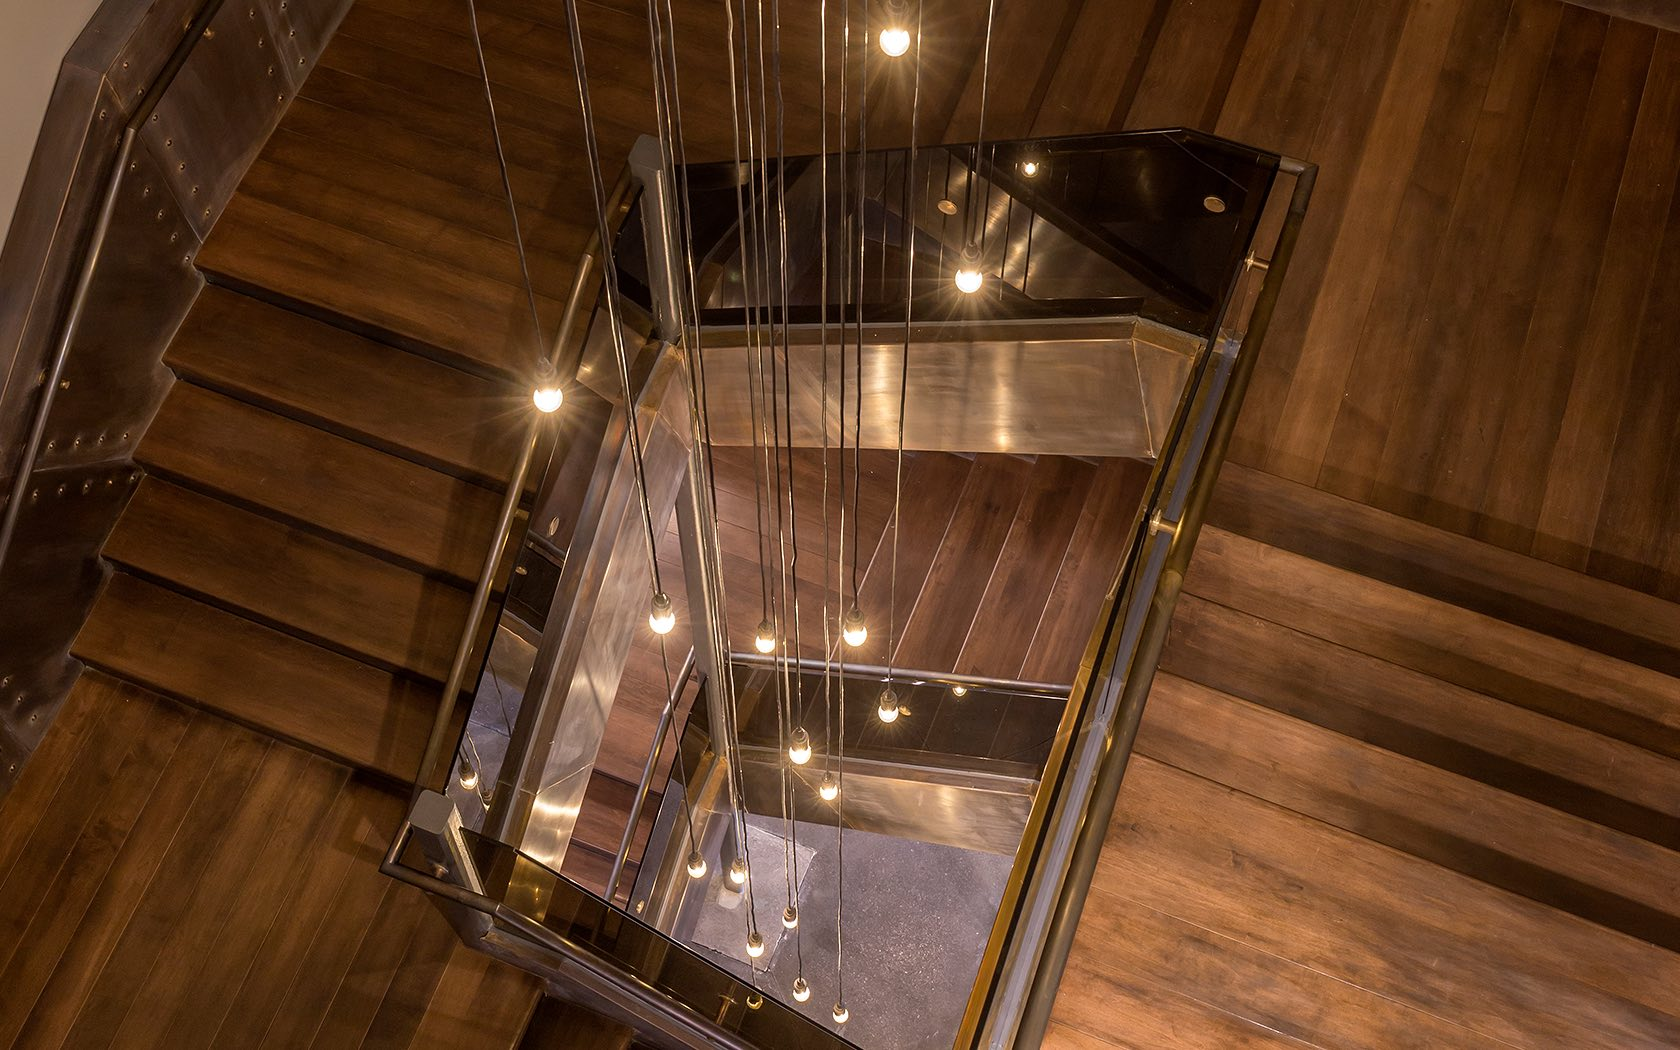 Spiral staircase with draping lights